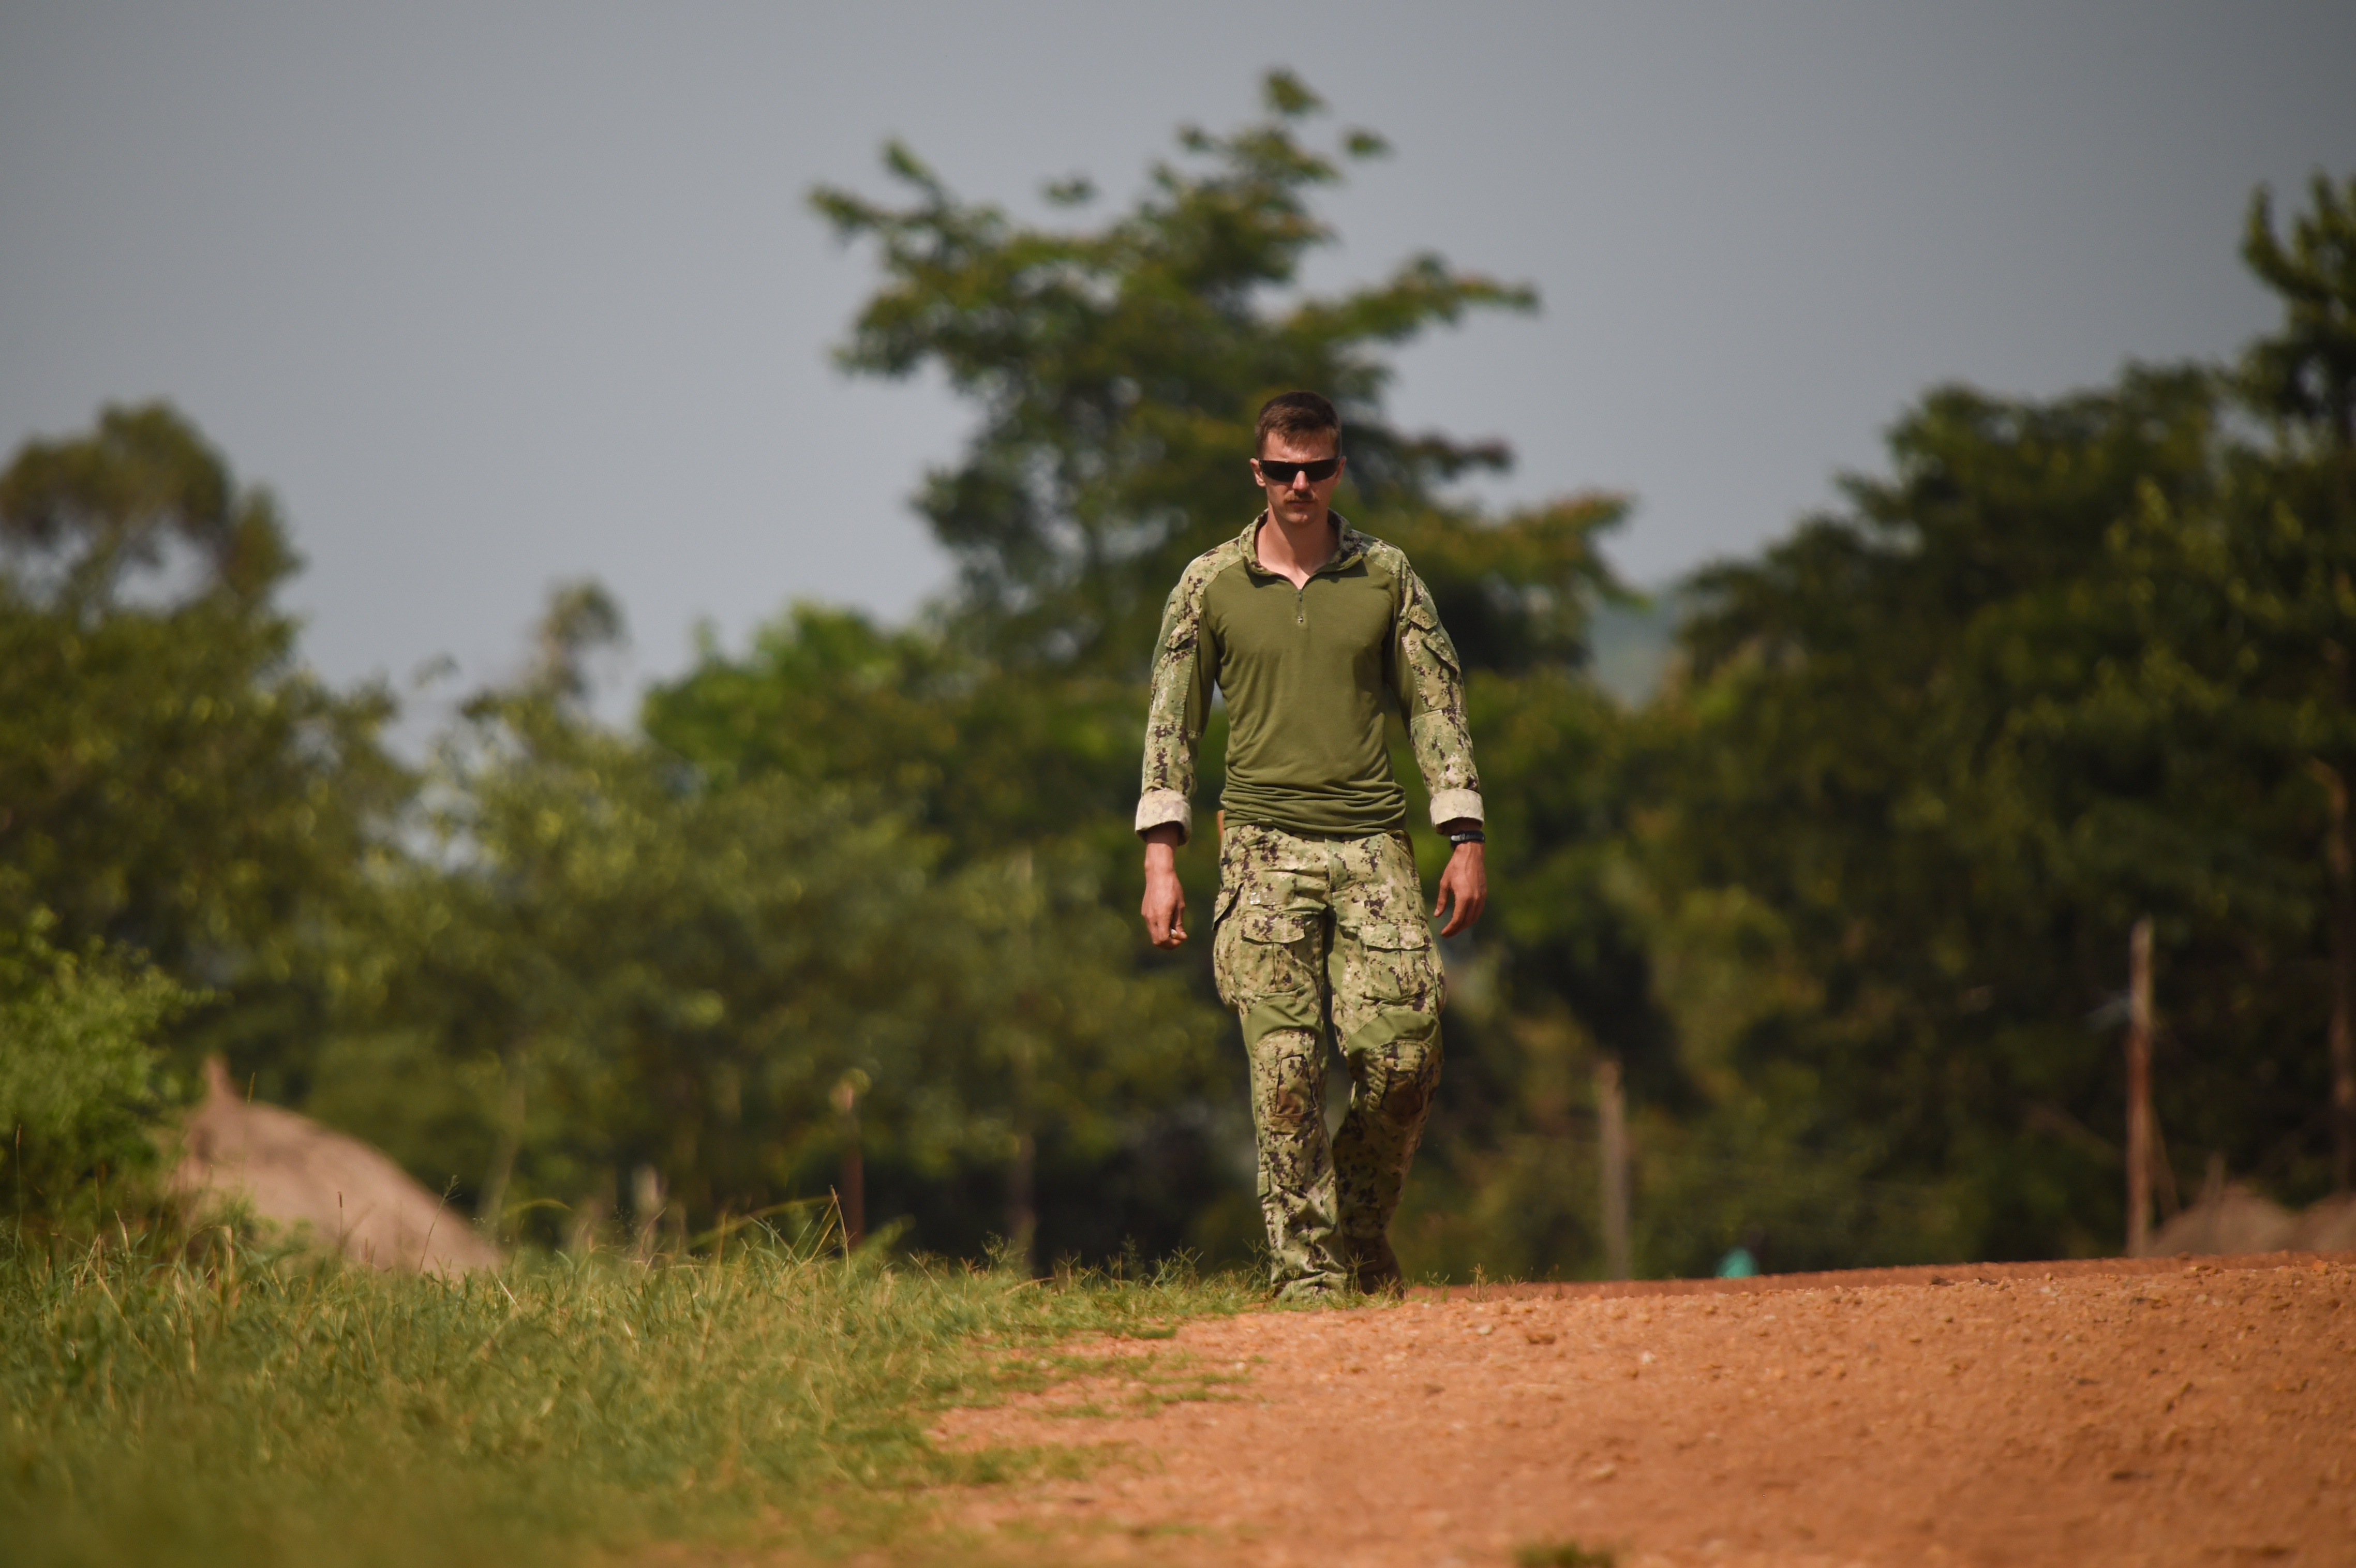 U.S. Navy Explosive Ordnance Disposal Technician 2nd Class Gary Lathrop, Combined Joint Task Force-Horn of Africa, Task Force Sparta, EOD Mobile Unit 8, walks along a road during counter improvised-explosive-device (IED) training at Camp Singo, Uganda, March 6, 2017.  The training gave UPDF members a chance to locate and clear IEDs in and around buildings and along the road. (U.S. Air National Guard photo by Staff Sgt. Penny Snoozy)